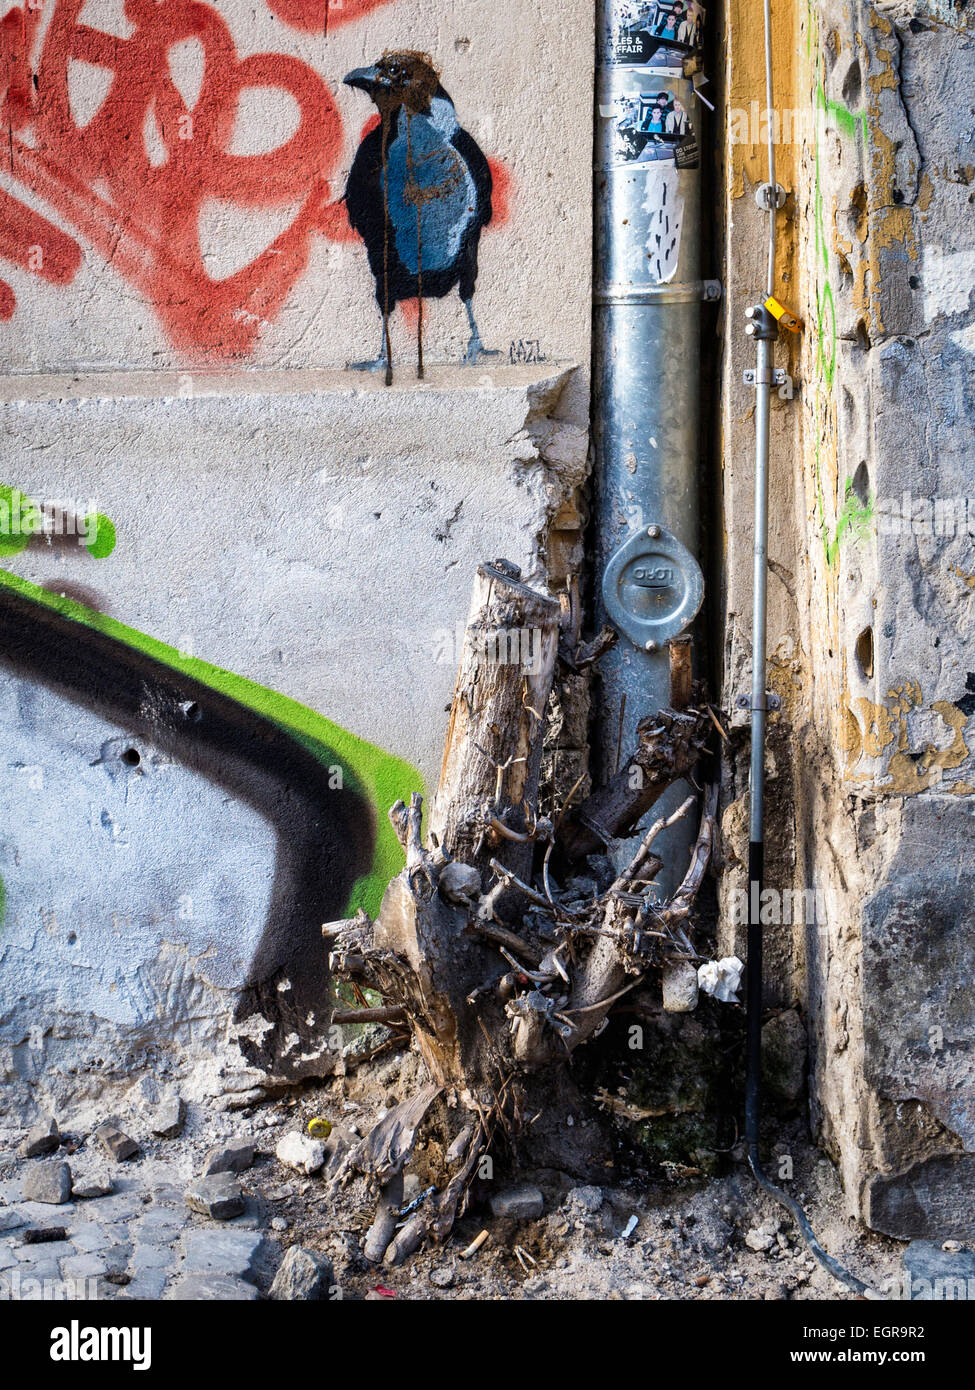 Berlin Urban street art and graffiti - black bird, drain-pipe and dead plant - Stock Image